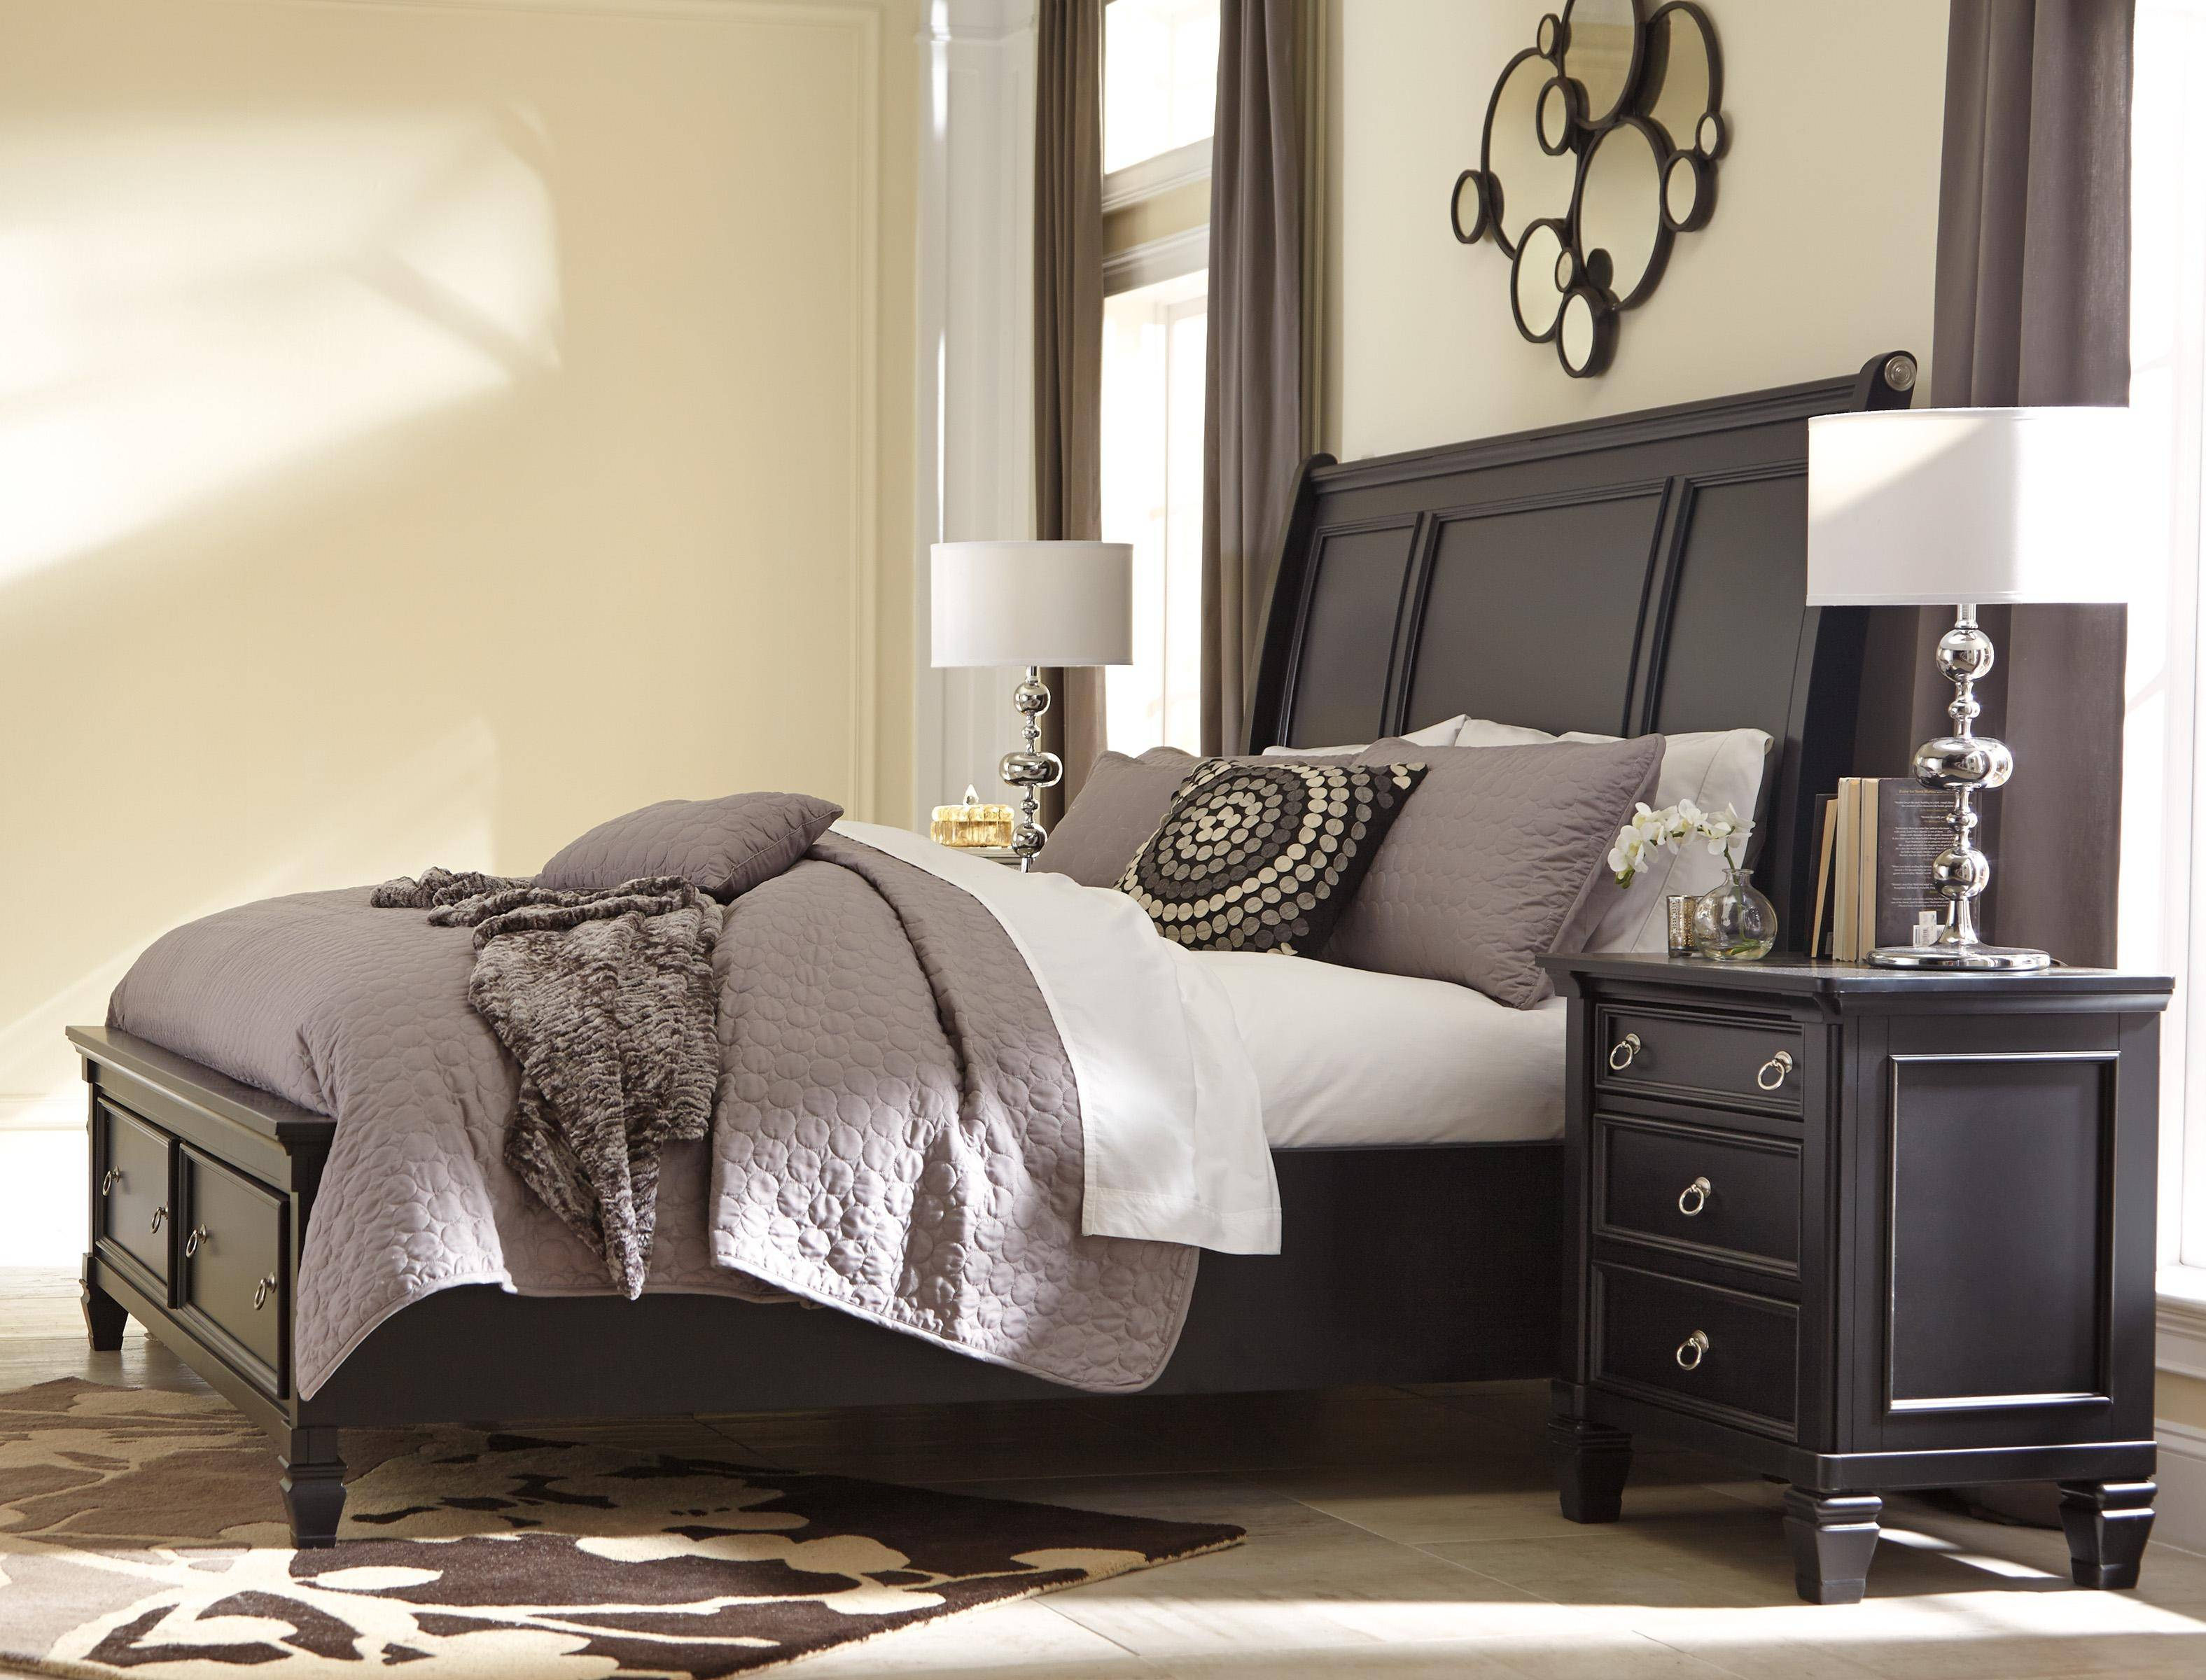 Ashley Greensburg B671 King Size Sleigh Bedroom Set 3pcs In Black B671 78 76 99 93 2 Buy Online